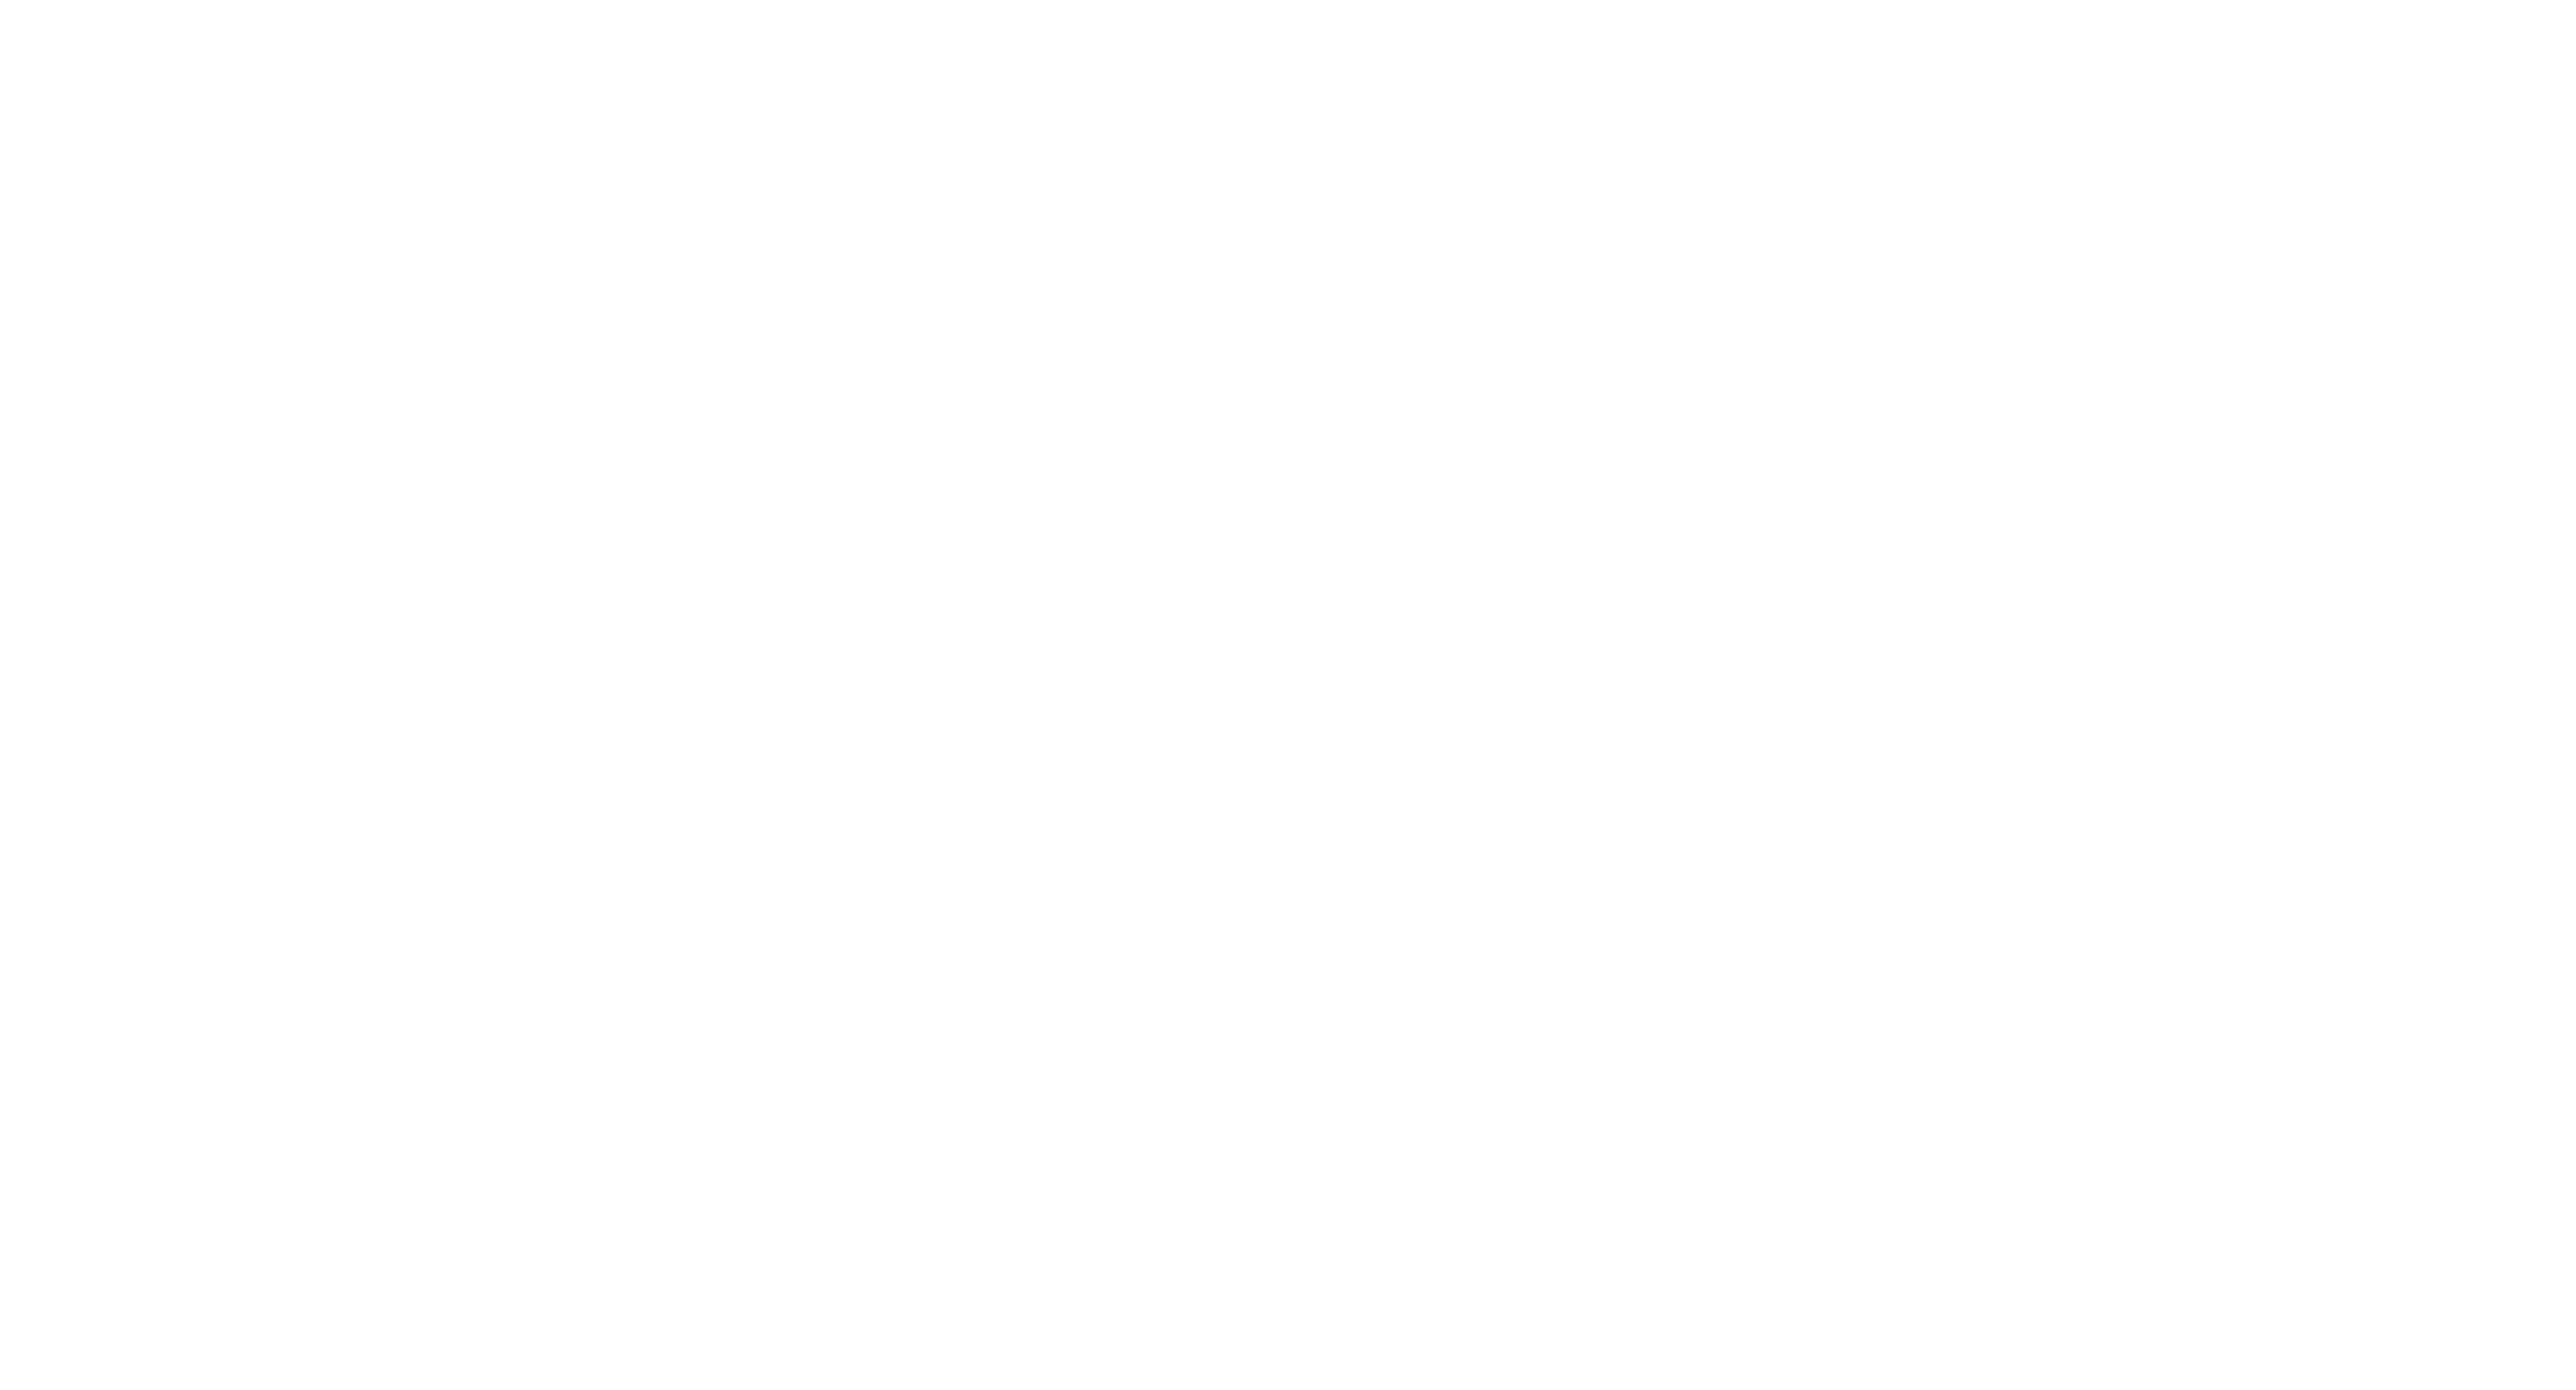 Greenwich Borough Liberal Democrats